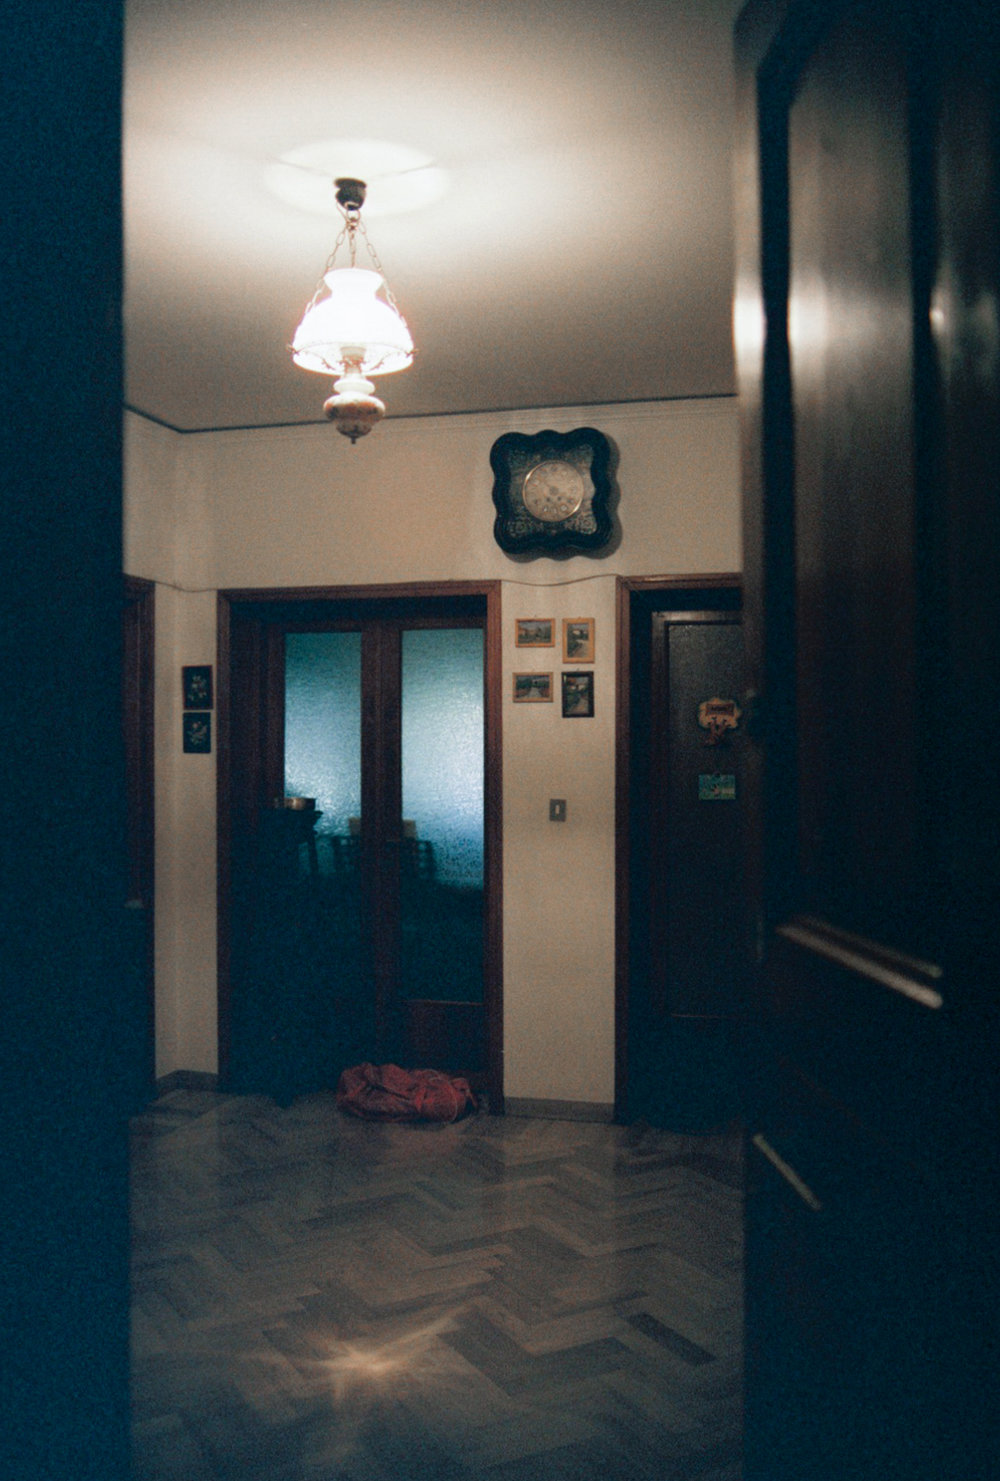 Florence Film_squarespace_14.jpg